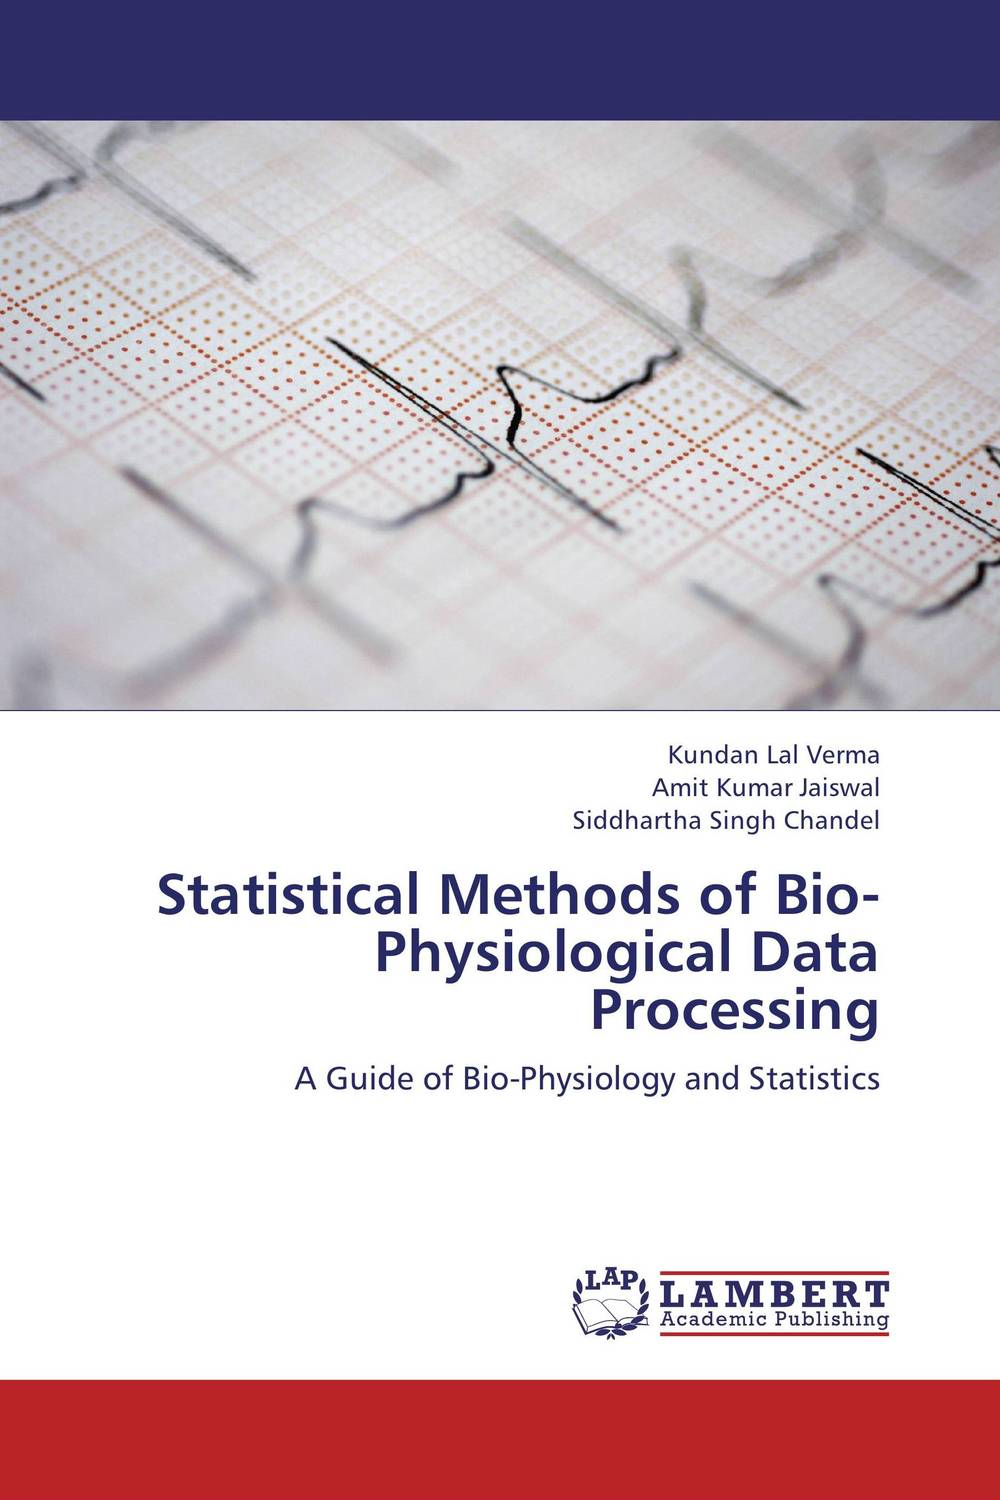 Statistical Methods of Bio-Physiological Data Processing ramwant gupta and munna singh recent physiological advances of finger millet